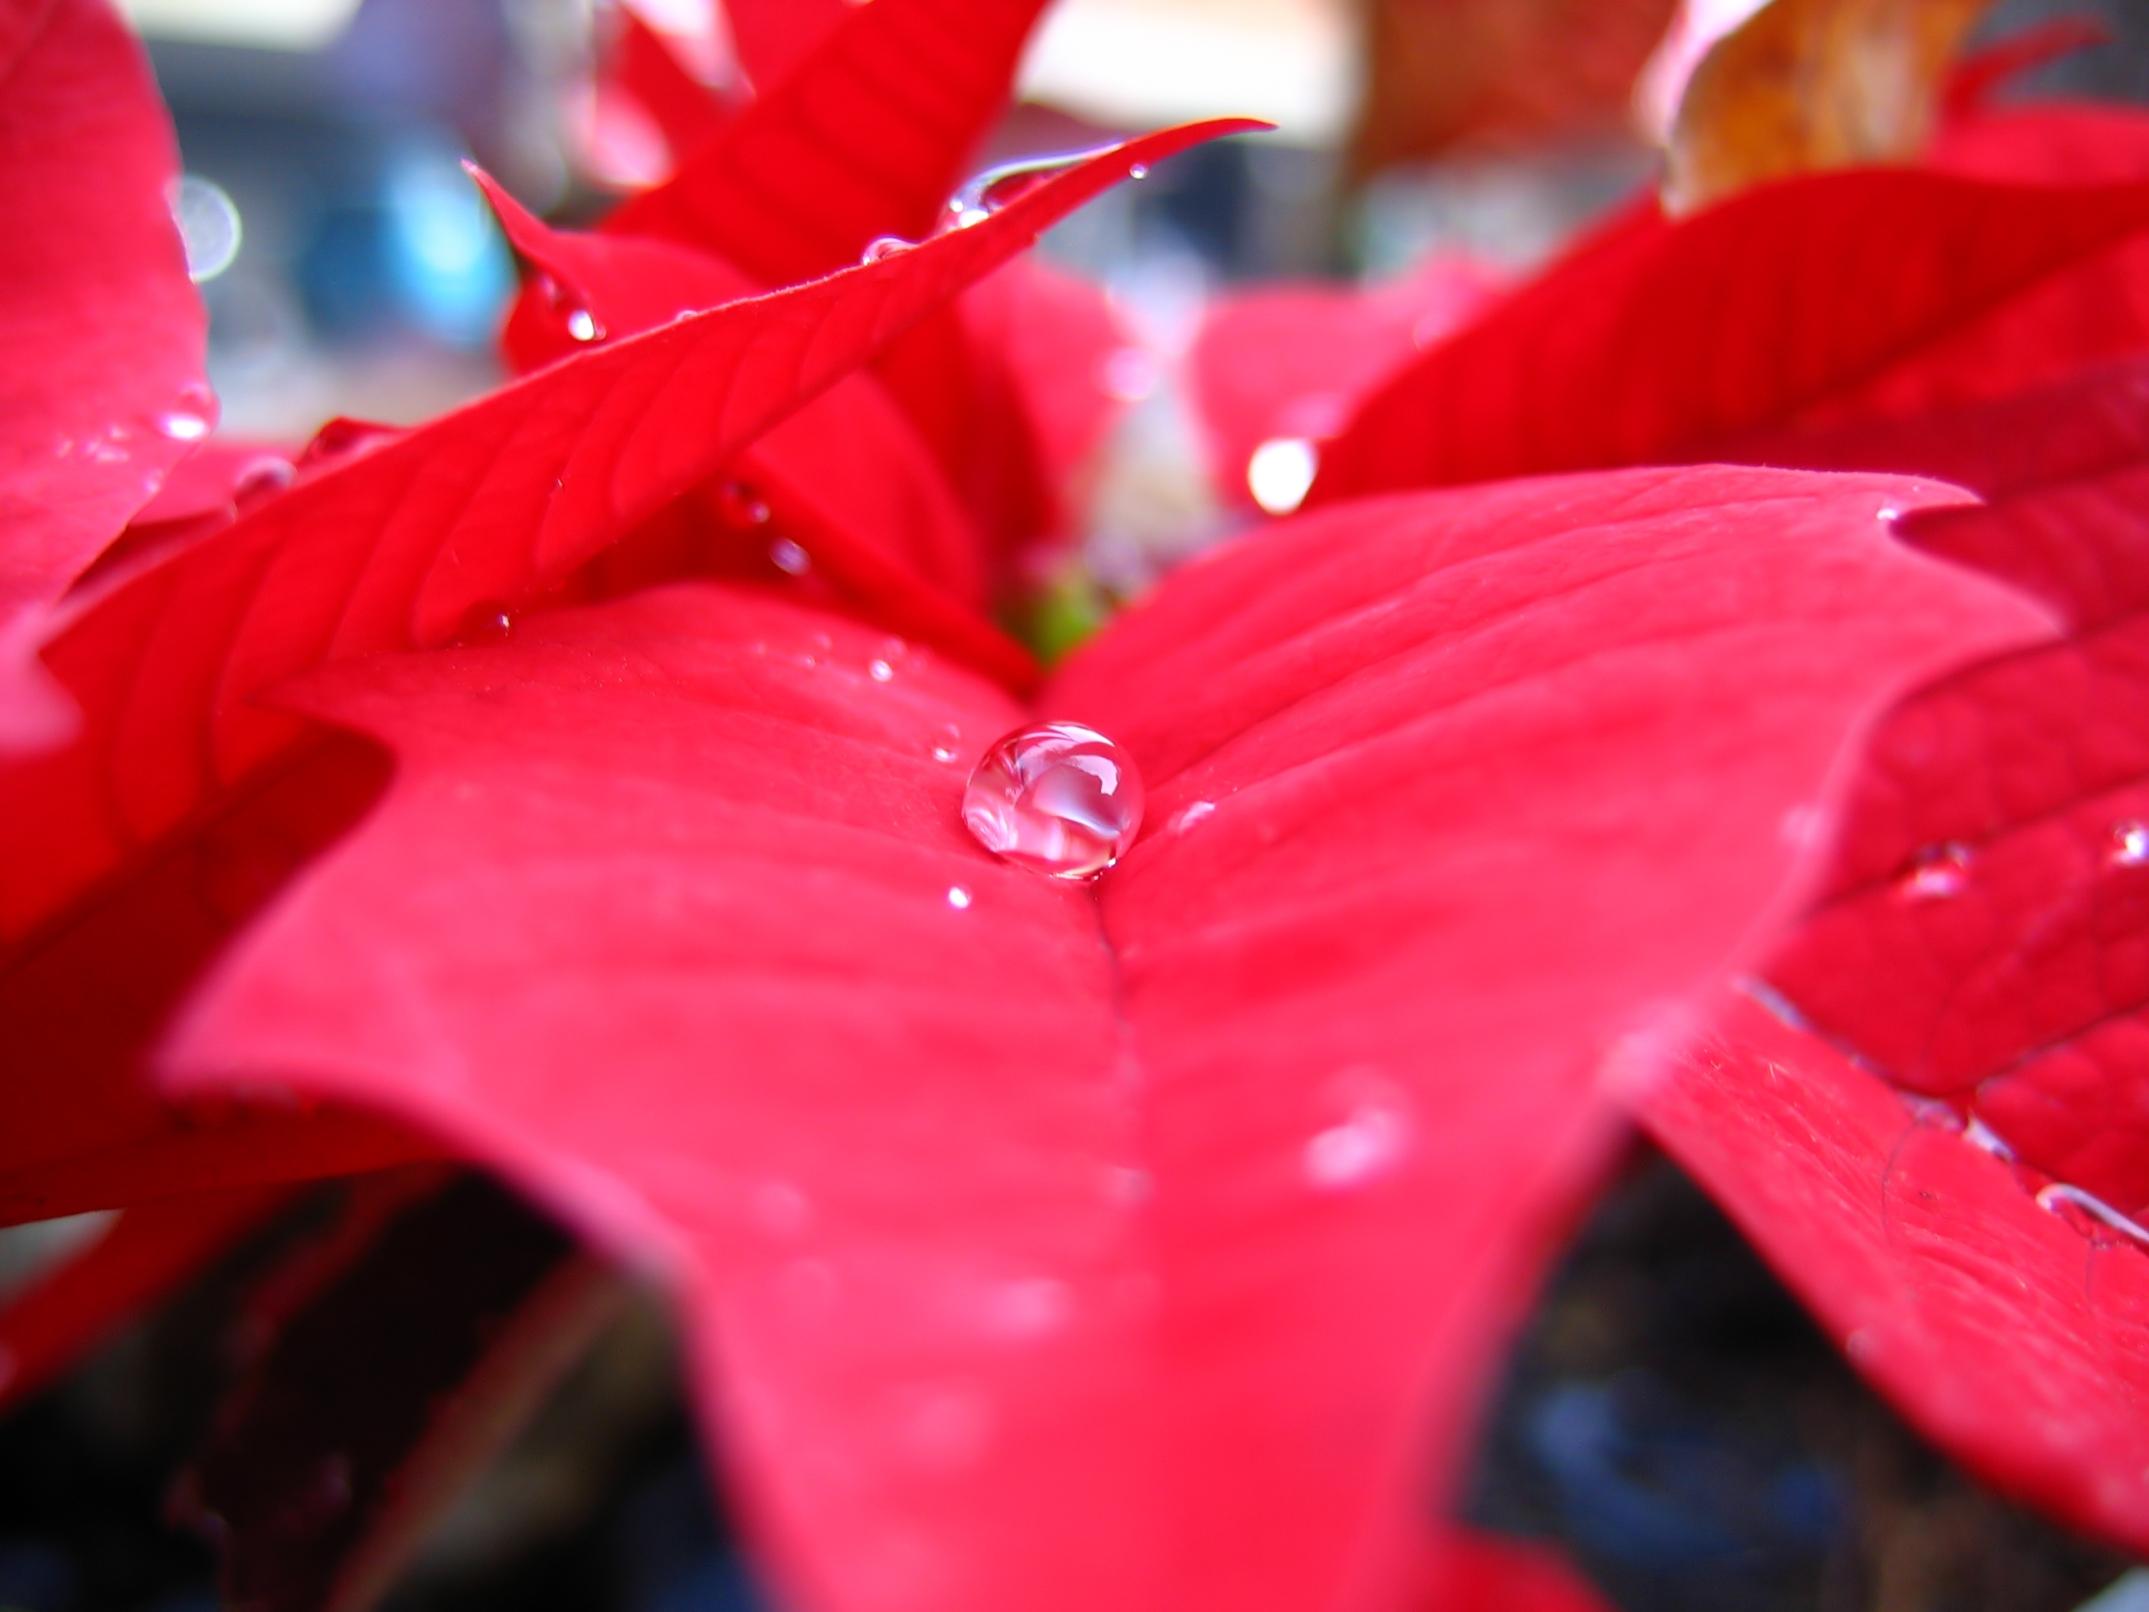 Poinsettia and water drop photo